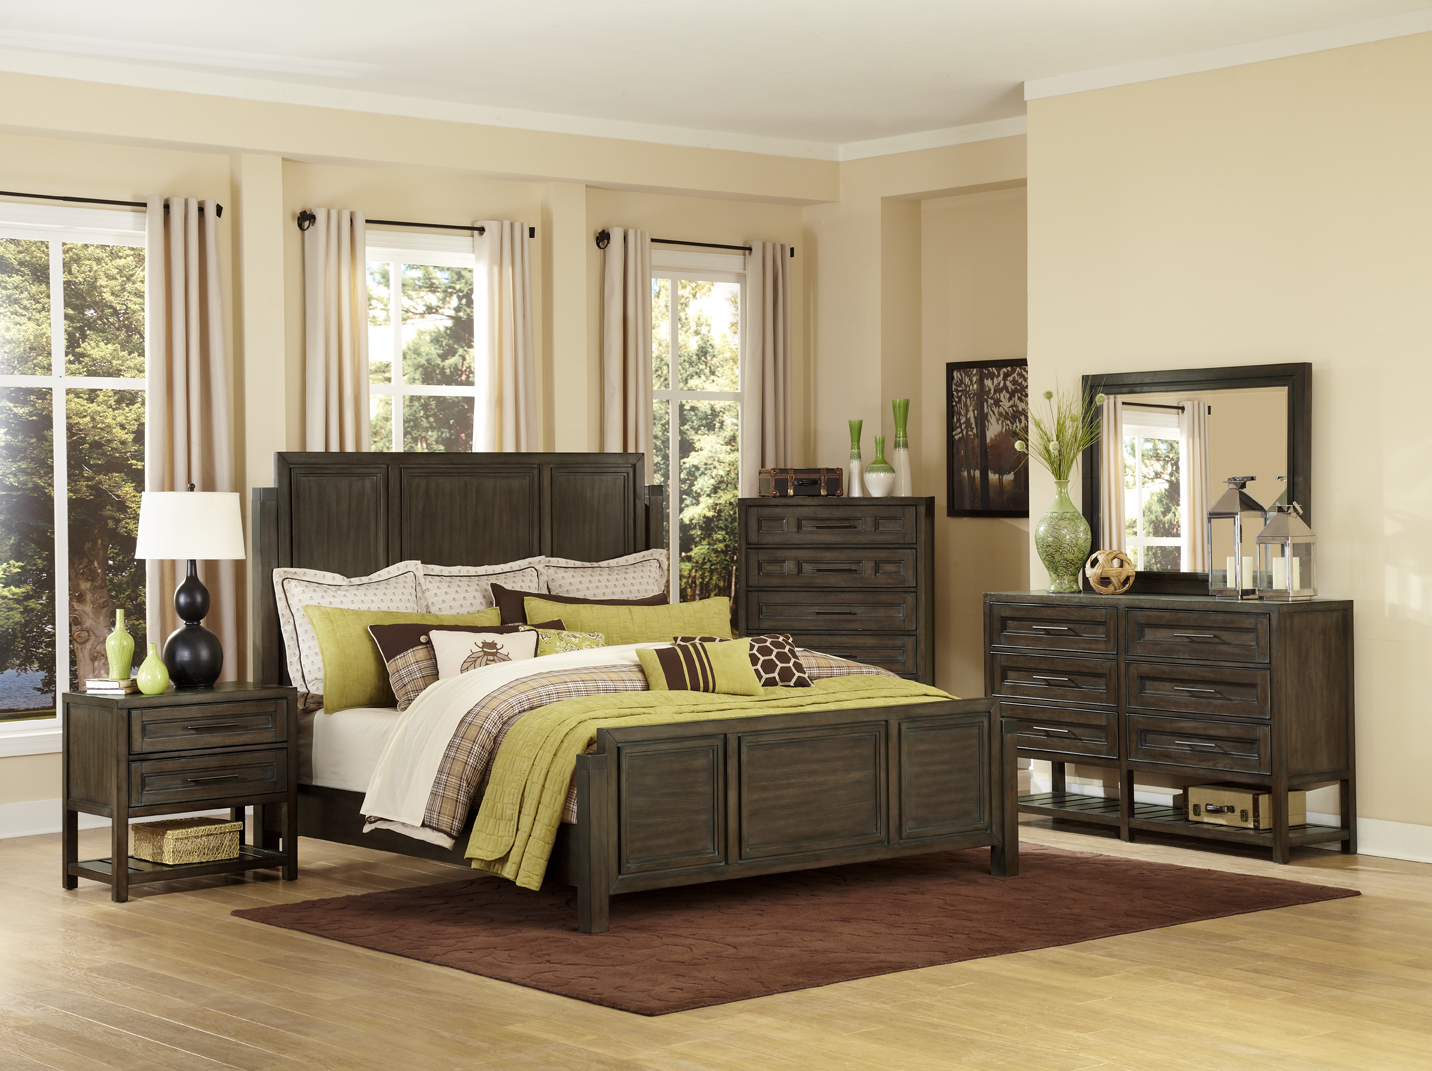 Eastlake bed room set (queen bed, night stand, dresser & mirror)